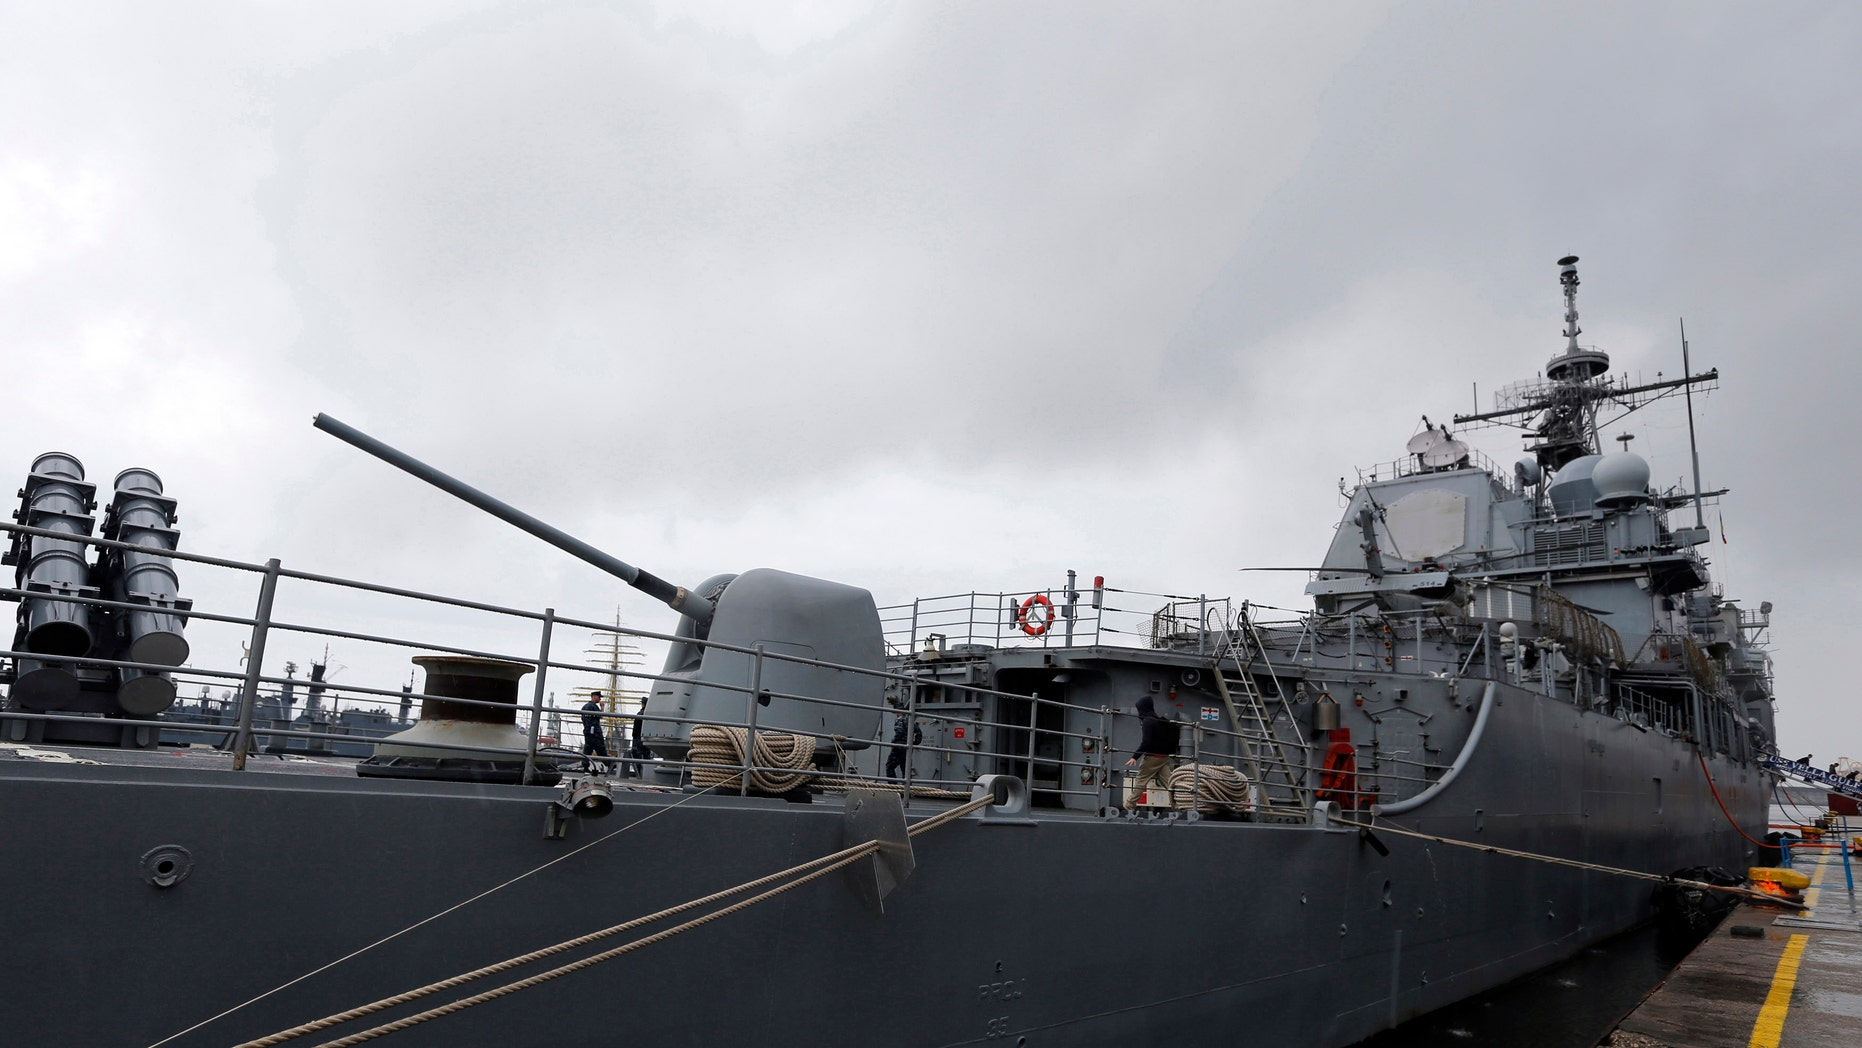 A view of U.S. Navy cruiser Vella Gulf in the Black Sea port of Constanta June 5, 2014. U.S. Defence Secretary Chuck Hagel visited the U.S. Navy cruiser Vella Gulf on rotational duty in the Black Sea, before making his way to Normandy to commemorate the 70th anniversary of the D-Day invasion. The United States will strengthen its presence in the Black Sea region using part of a $1 billion fund promised to NATO allies on Russia's borders, and will continue to send warships to the area, Defence Secretary Chuck Hagel said in Romania on Thursday. REUTERS/Bogdan Cristel (ROMANIA - Tags: ANNIVERSARY MILITARY POLITICS MARITIME CONFLICT) - RTR3SDAK